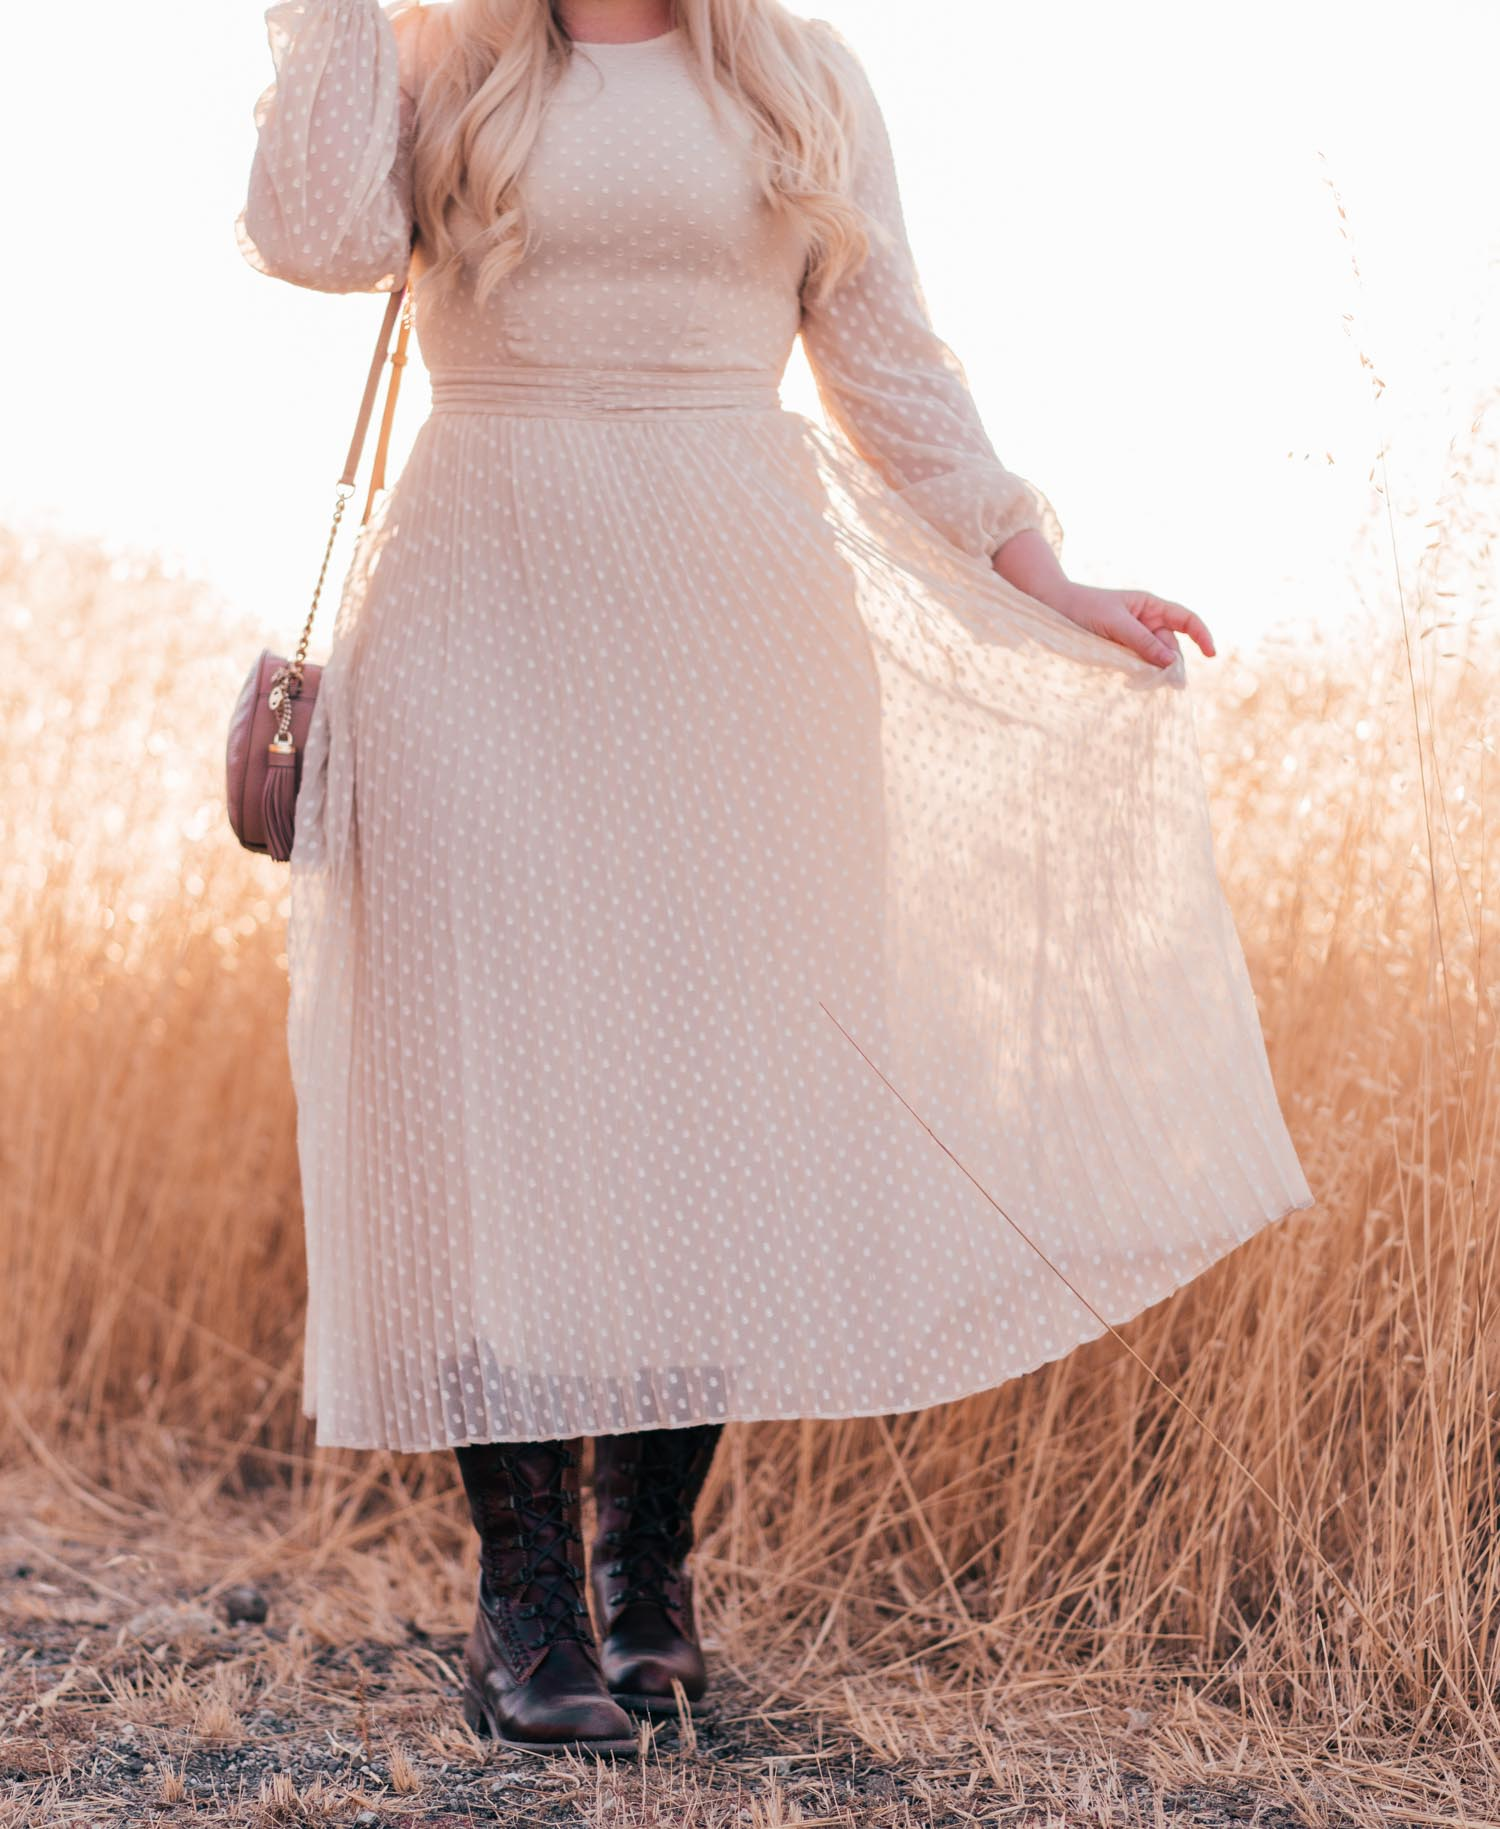 Elizabeth Hugen of Lizzie in Lace shares her Neutral Fall Outfit Essentials including this cream dress